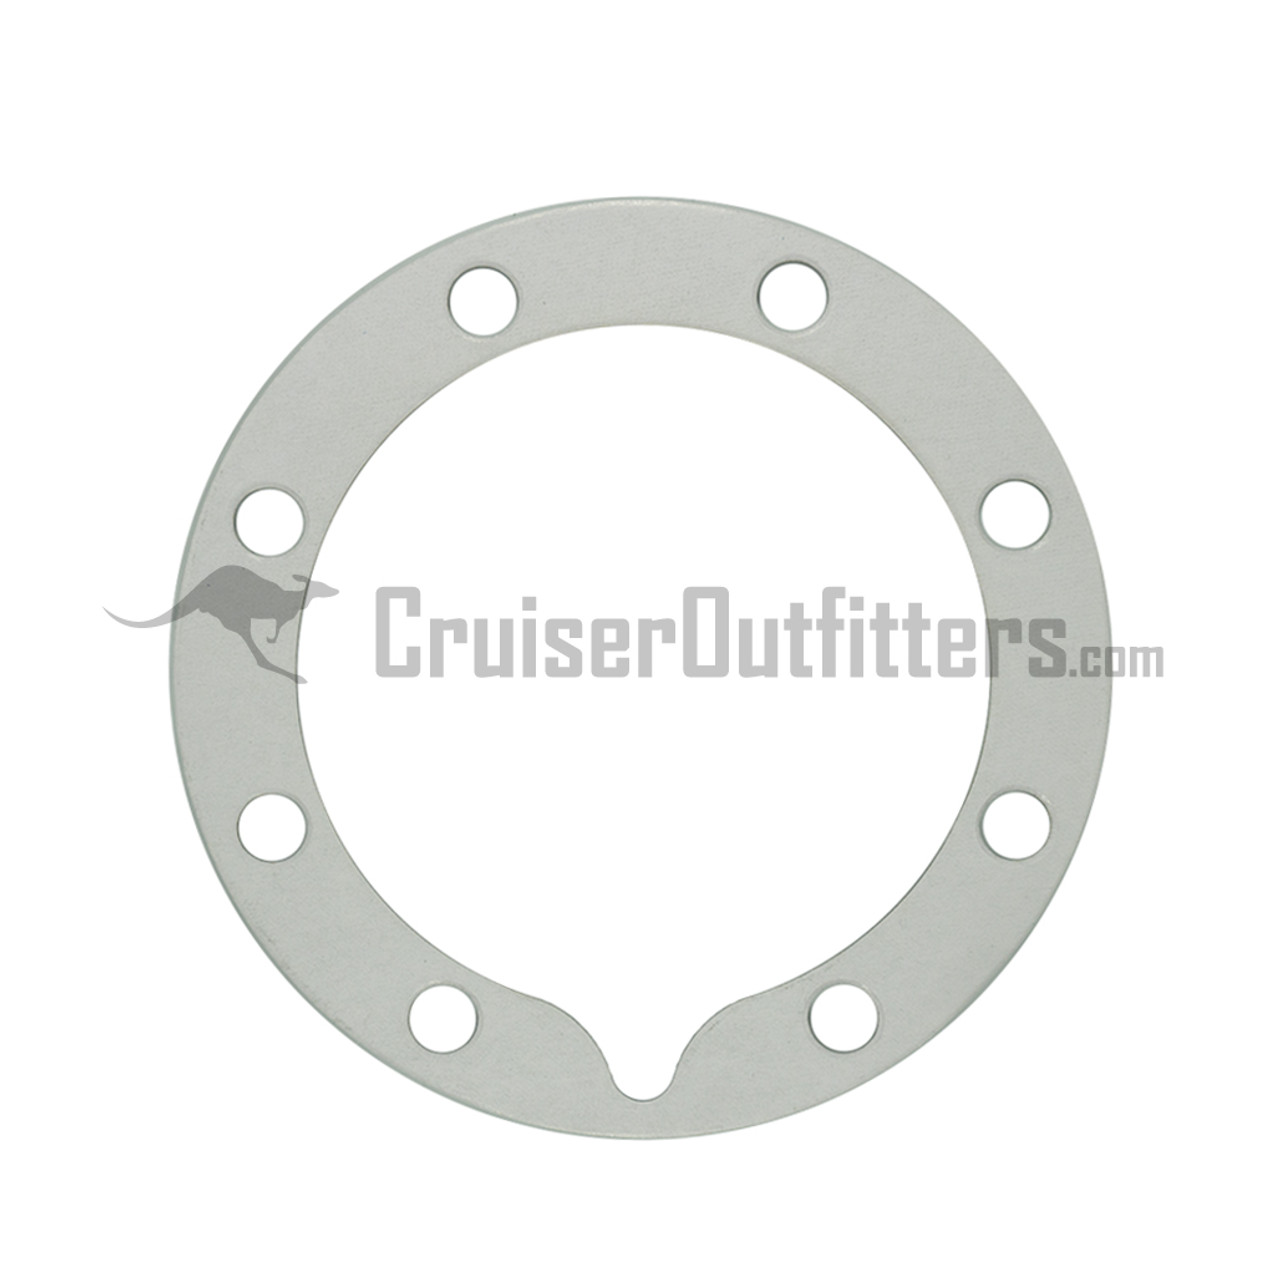 Disc Brake Backing Plate Gasket - Japanese - Fits 9/1975 - 1997 FJ40/55/60/62/80 (2 Required per Axle) (HG60011)